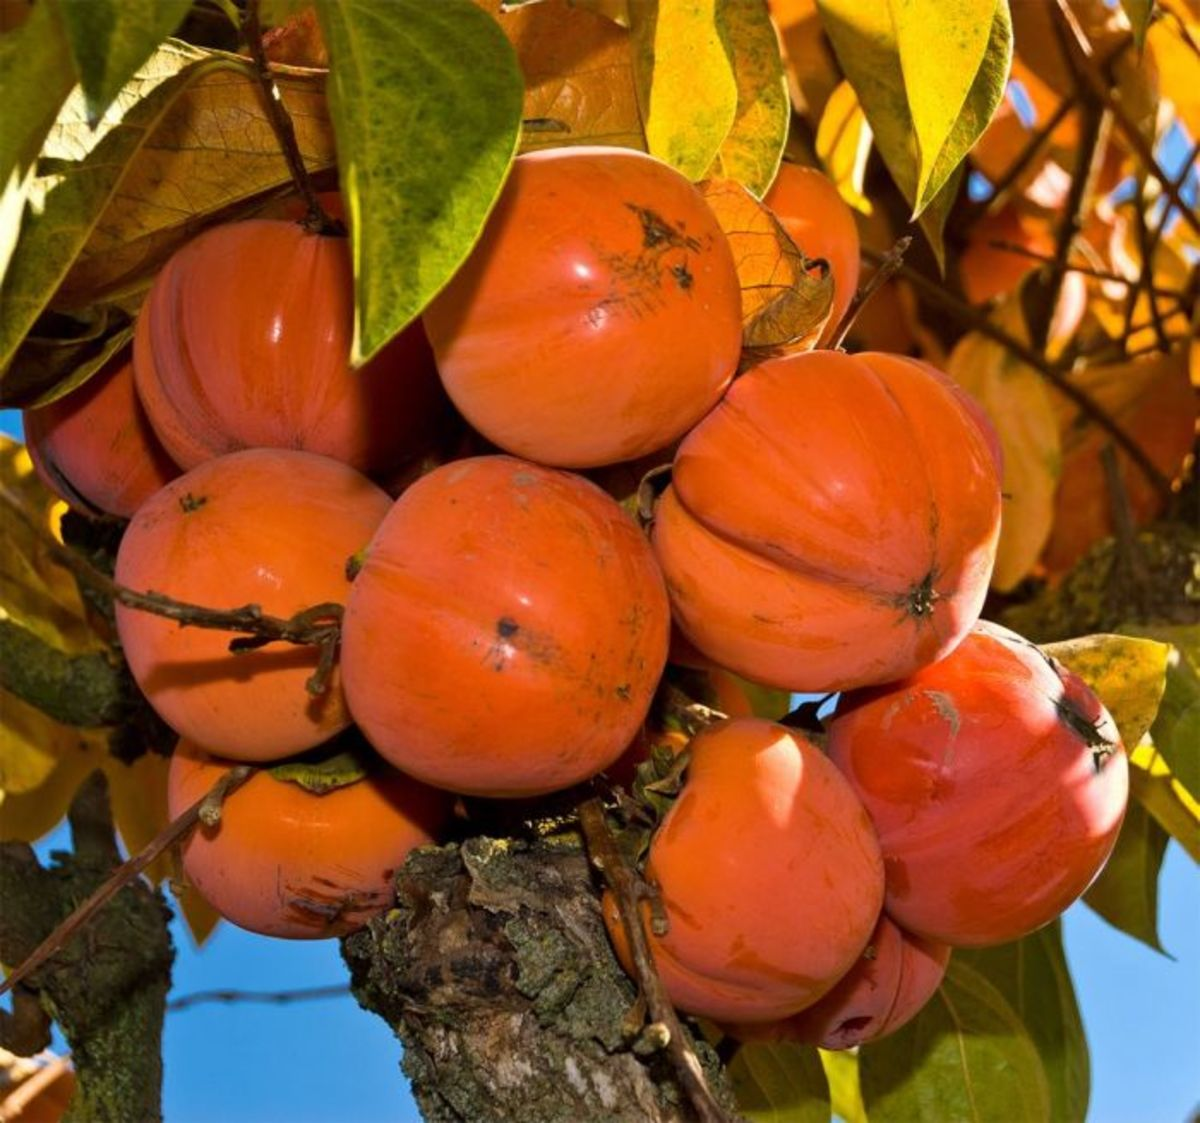 The persimmon is the edible fruit of a number of species of trees in the genus Diospyros. The most widely cultivated of these is the Asian or Japanese persimmon, Diospyros kaki. Diospyros is in the family Ebenaceae, and a number of non-persimmon spec